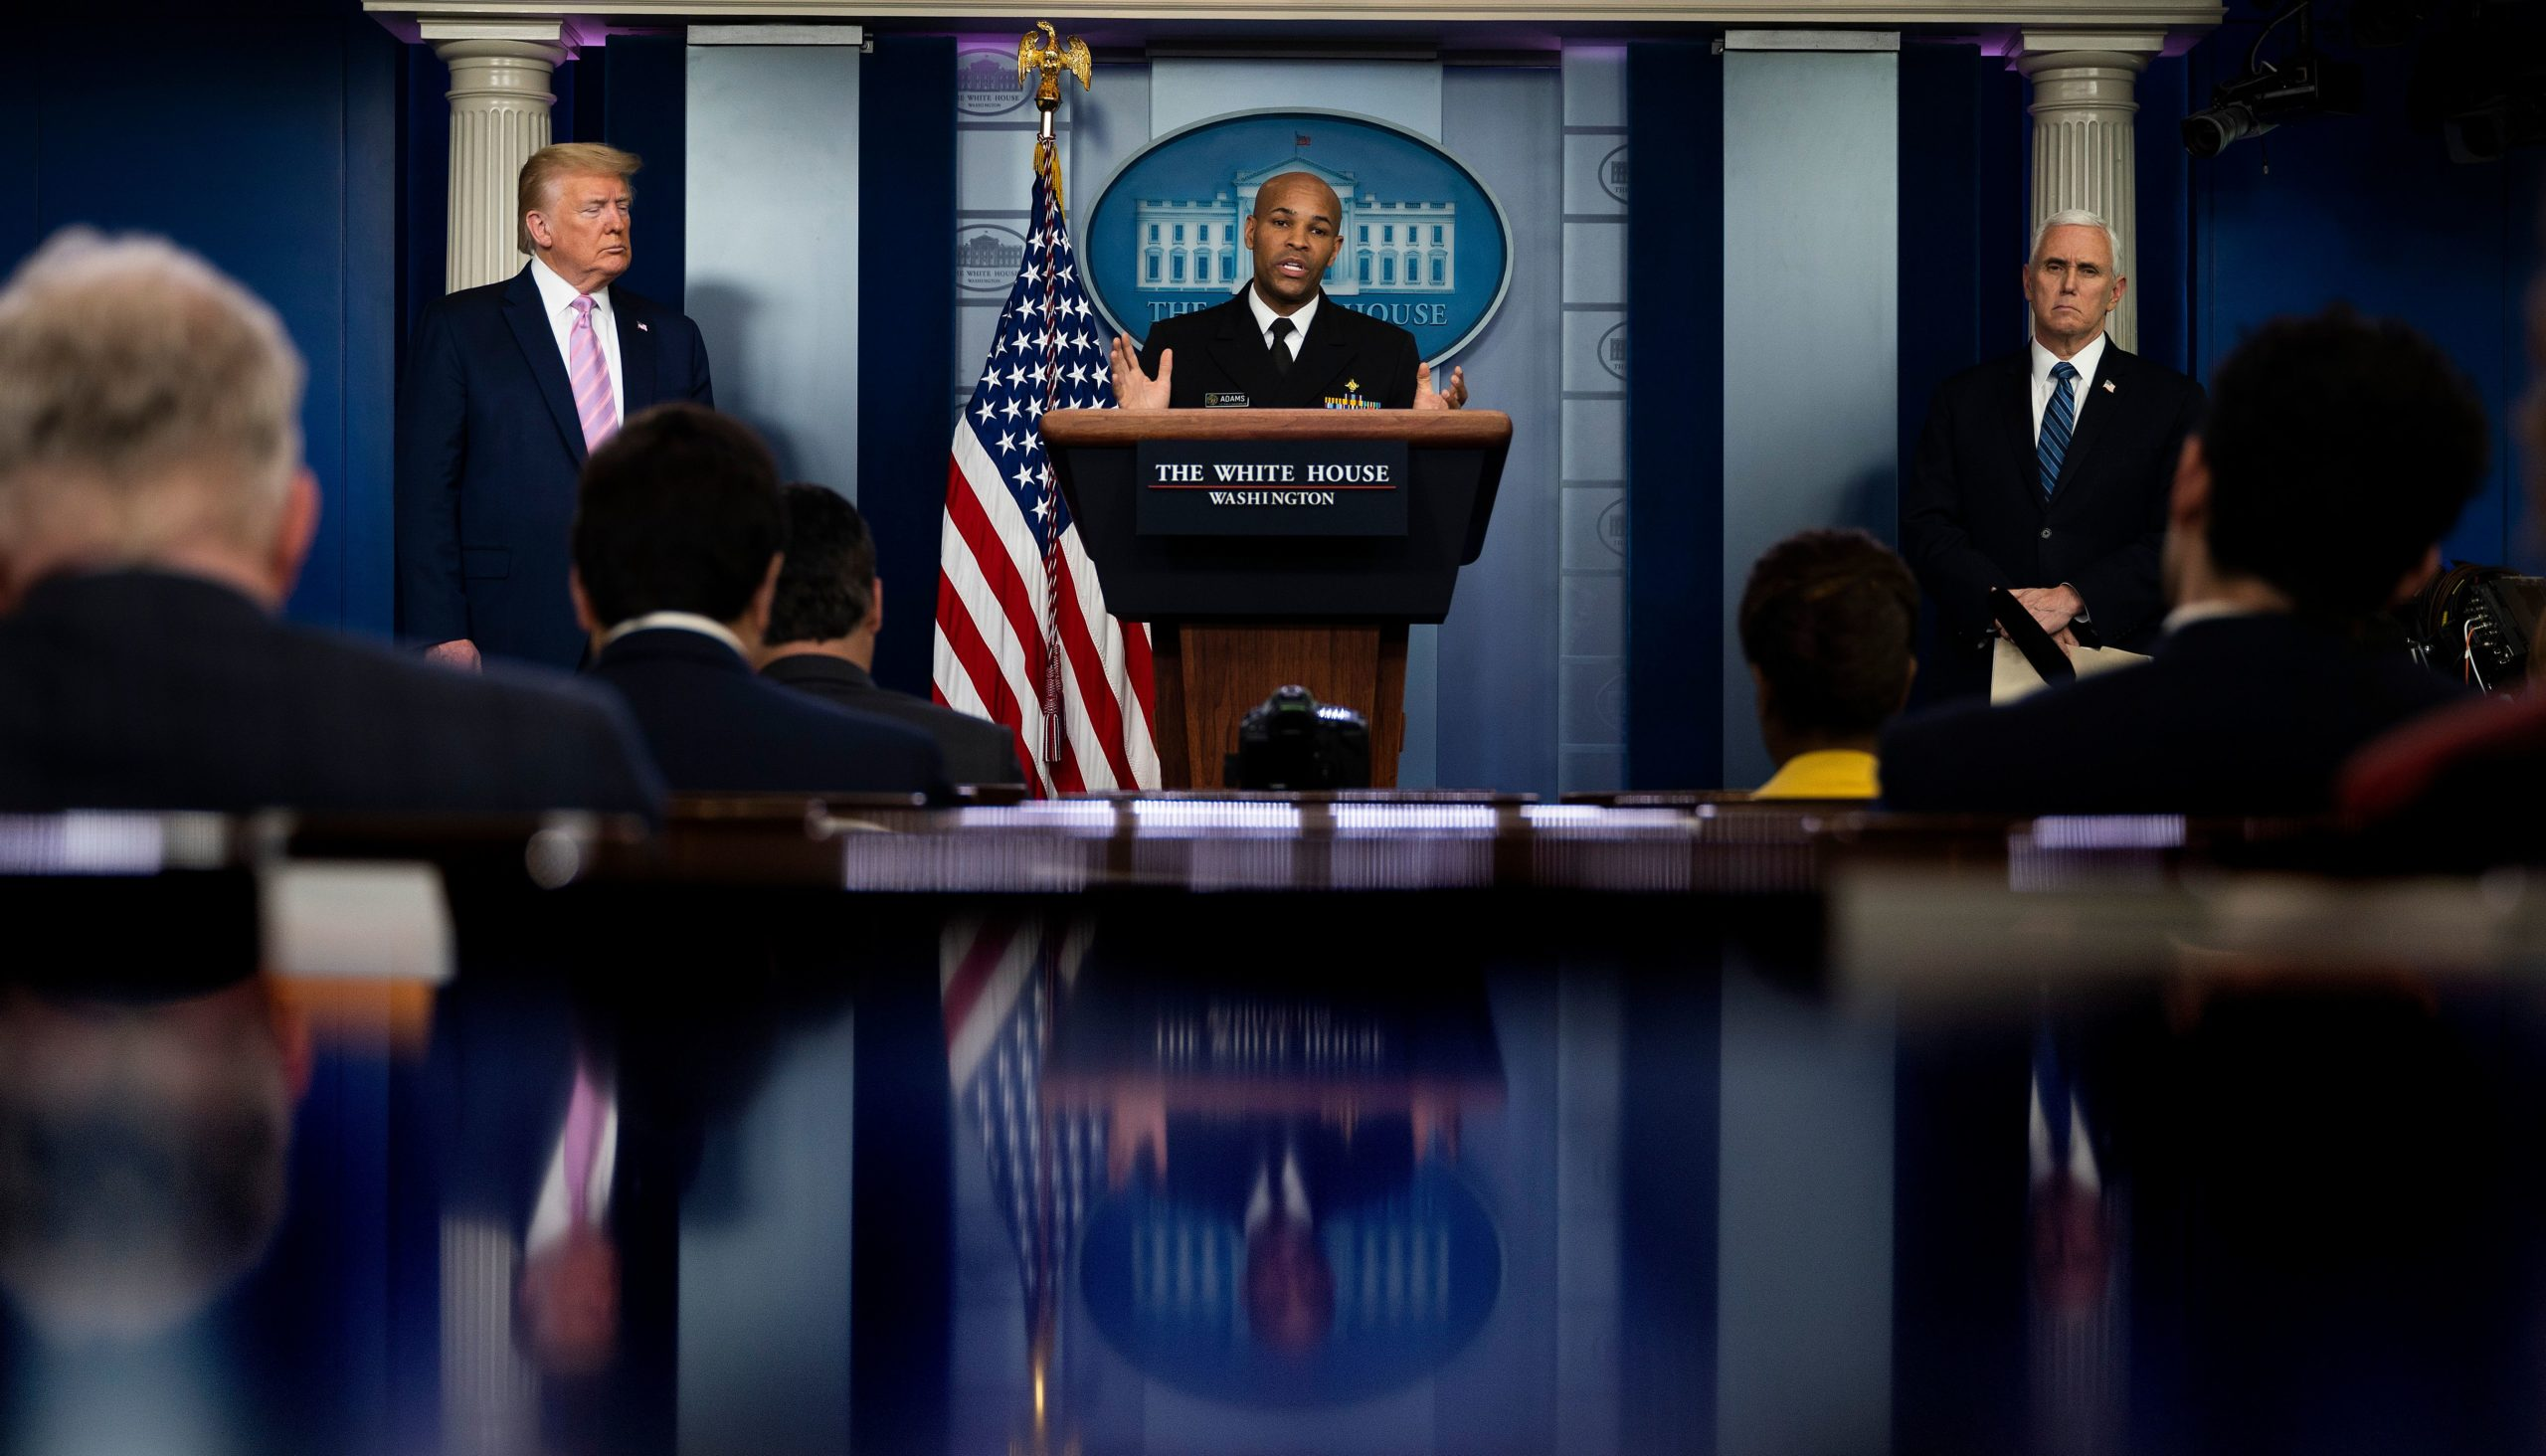 US Surgeon General Jerome Adams (C) speaks, flanked by US President Donald Trump (L) and US Vice President Mike Pence, during the daily briefing on the novel coronavirus, which causes COVID-19, in the Brady Briefing Room at the White House on April 10, 2020, in Washington, DC. (Photo by JIM WATSON/AFP via Getty Images)